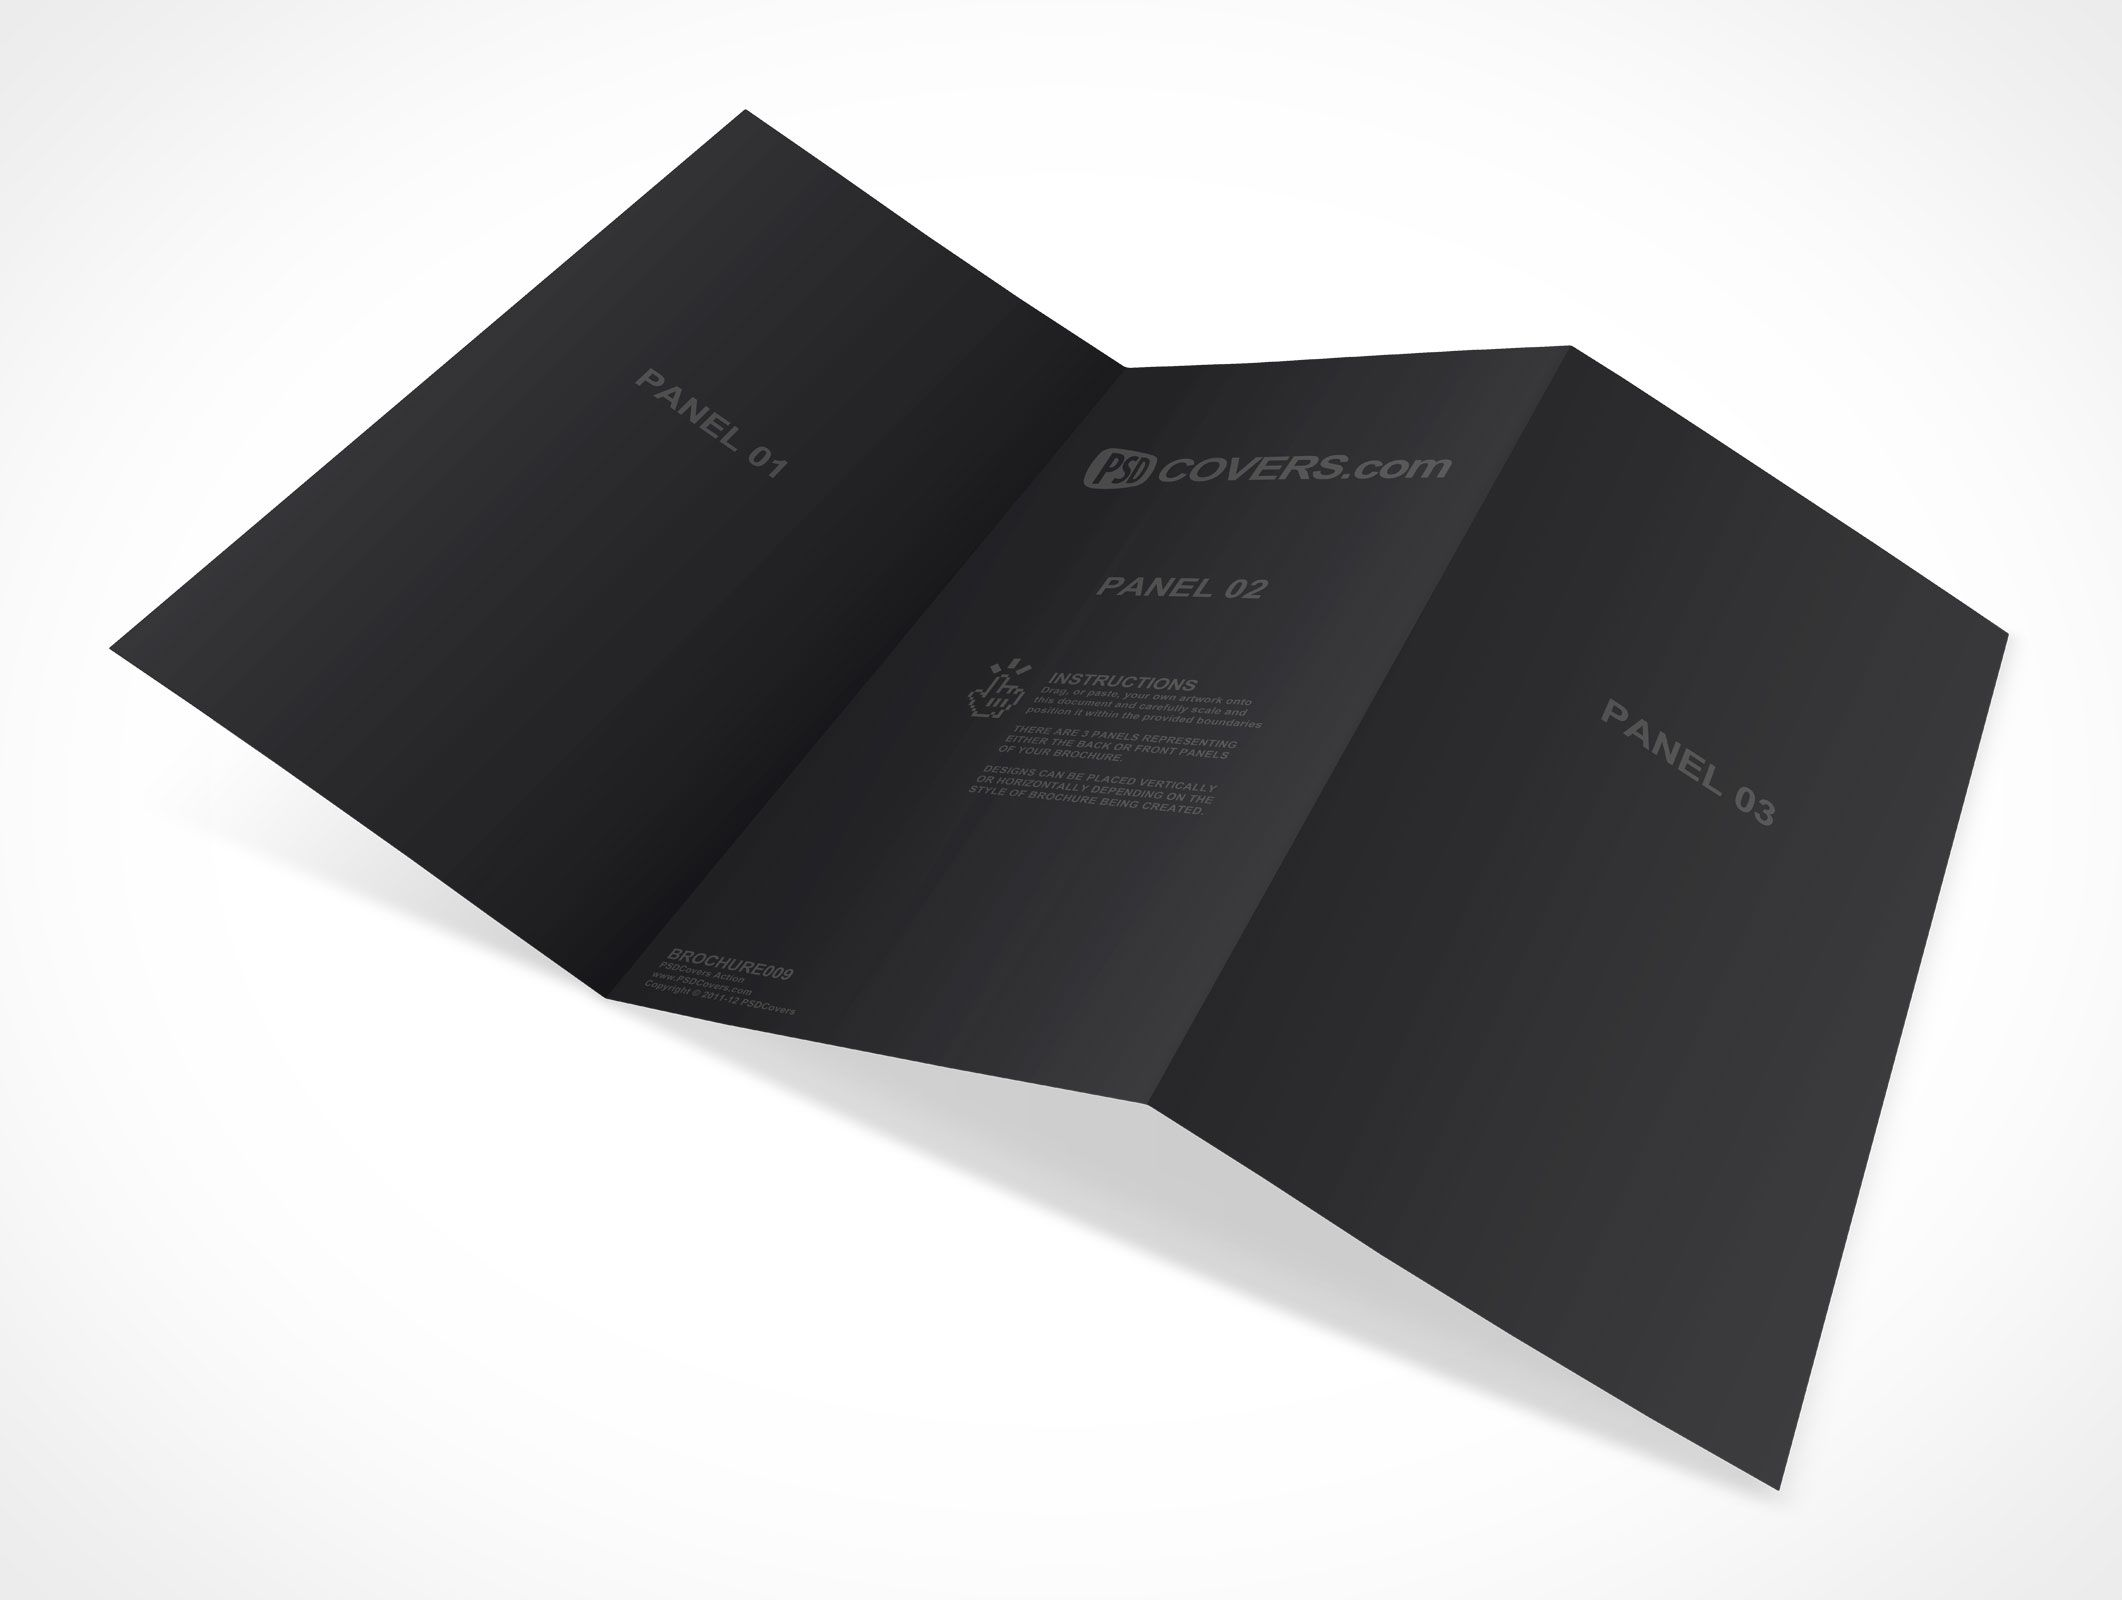 brochure009 is a psd mockup action of a horizontal trifold 3 panel